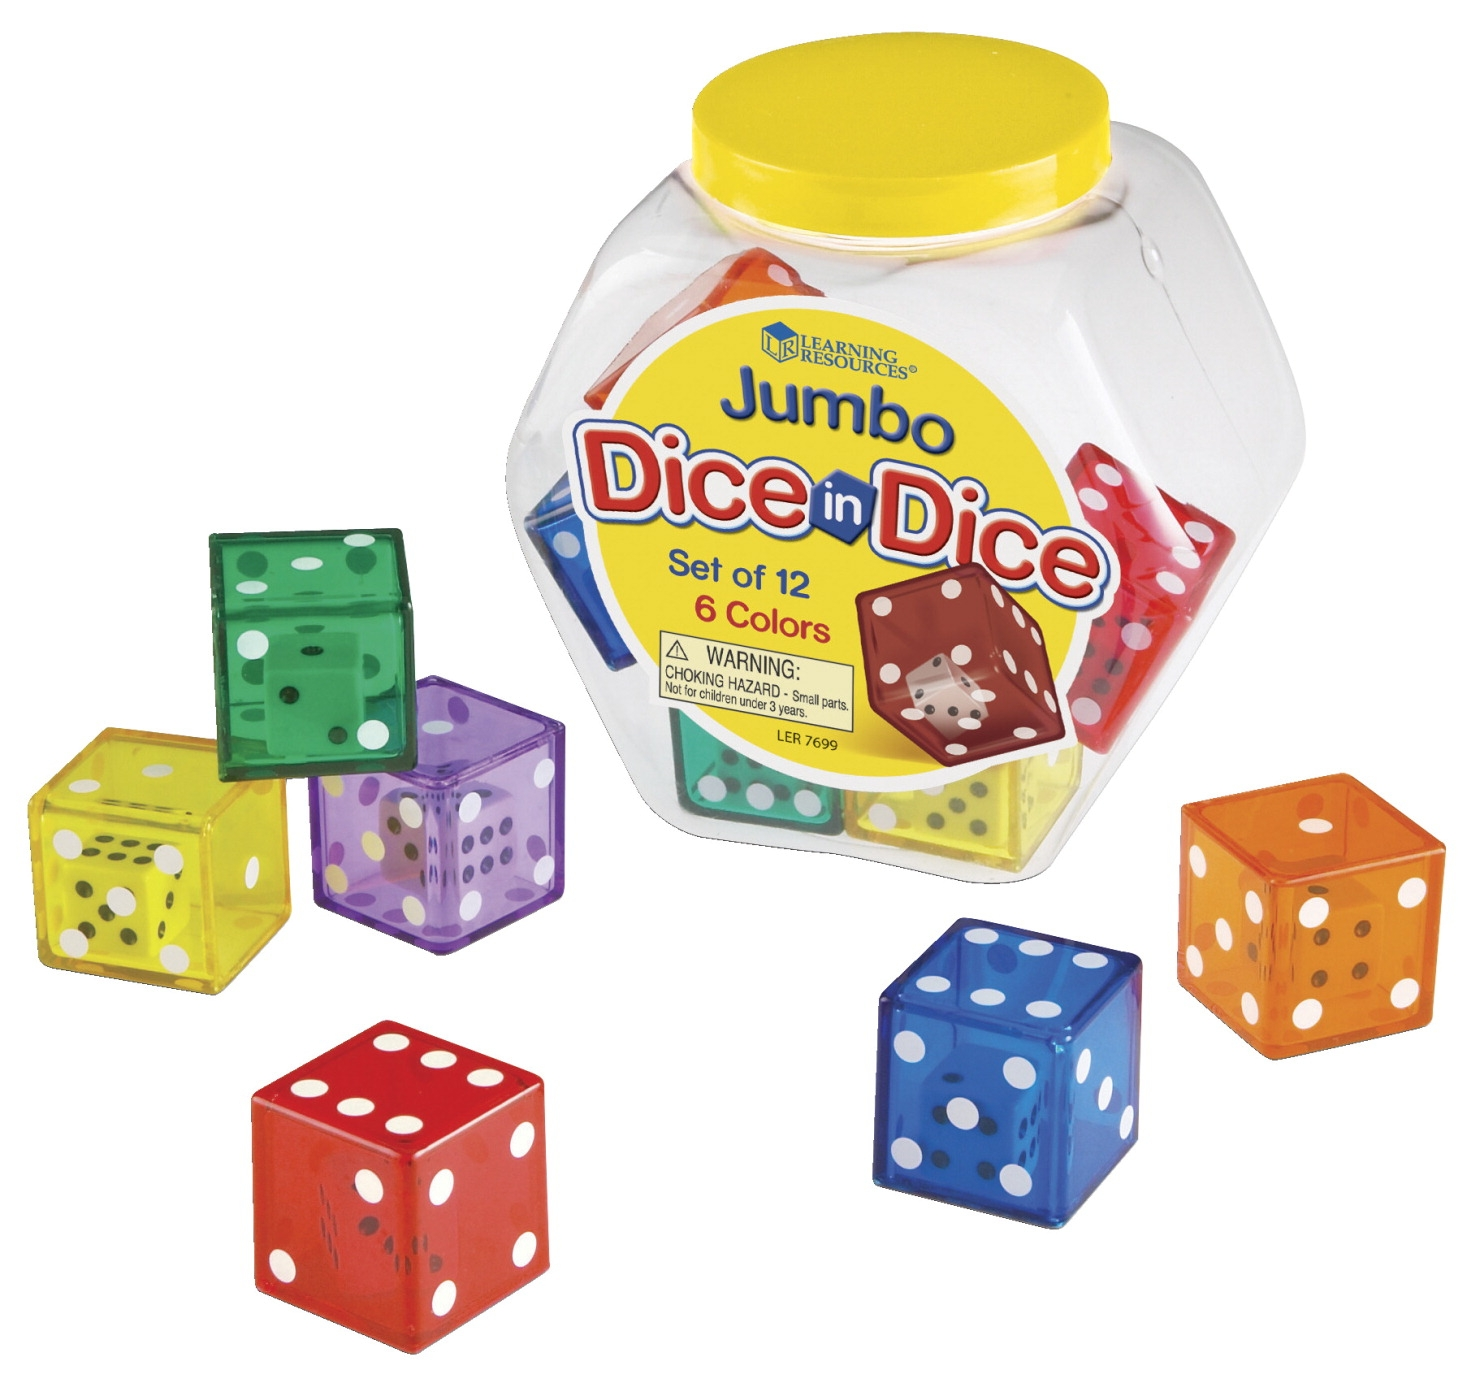 Learning Resources Jumbo Dice In Dice Set - 1363022 - Instructional Materials Resources Science Activities Equipment Physical Science Projects Books 1363022